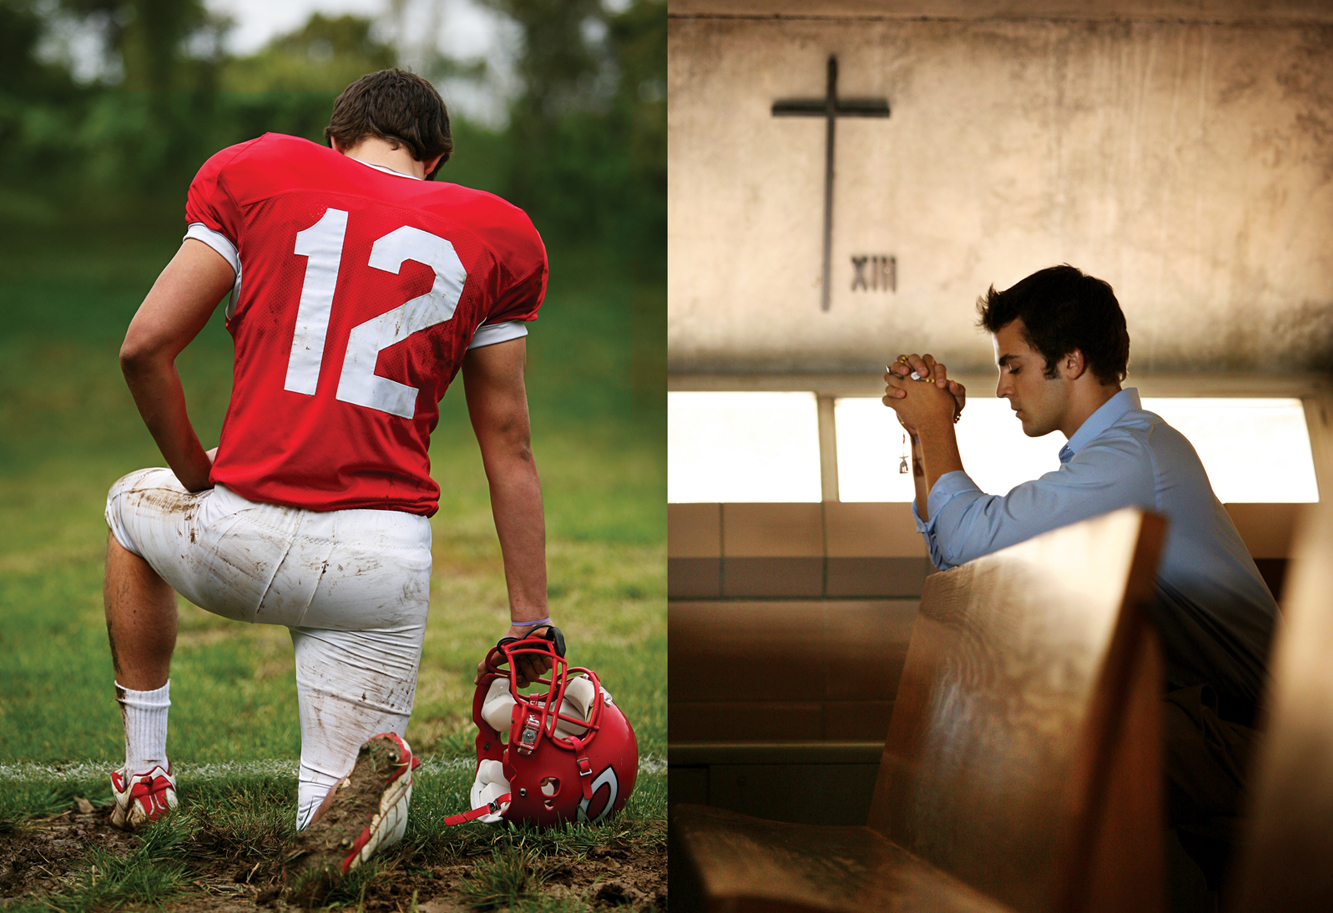 Chaminade student photos: football and prayer